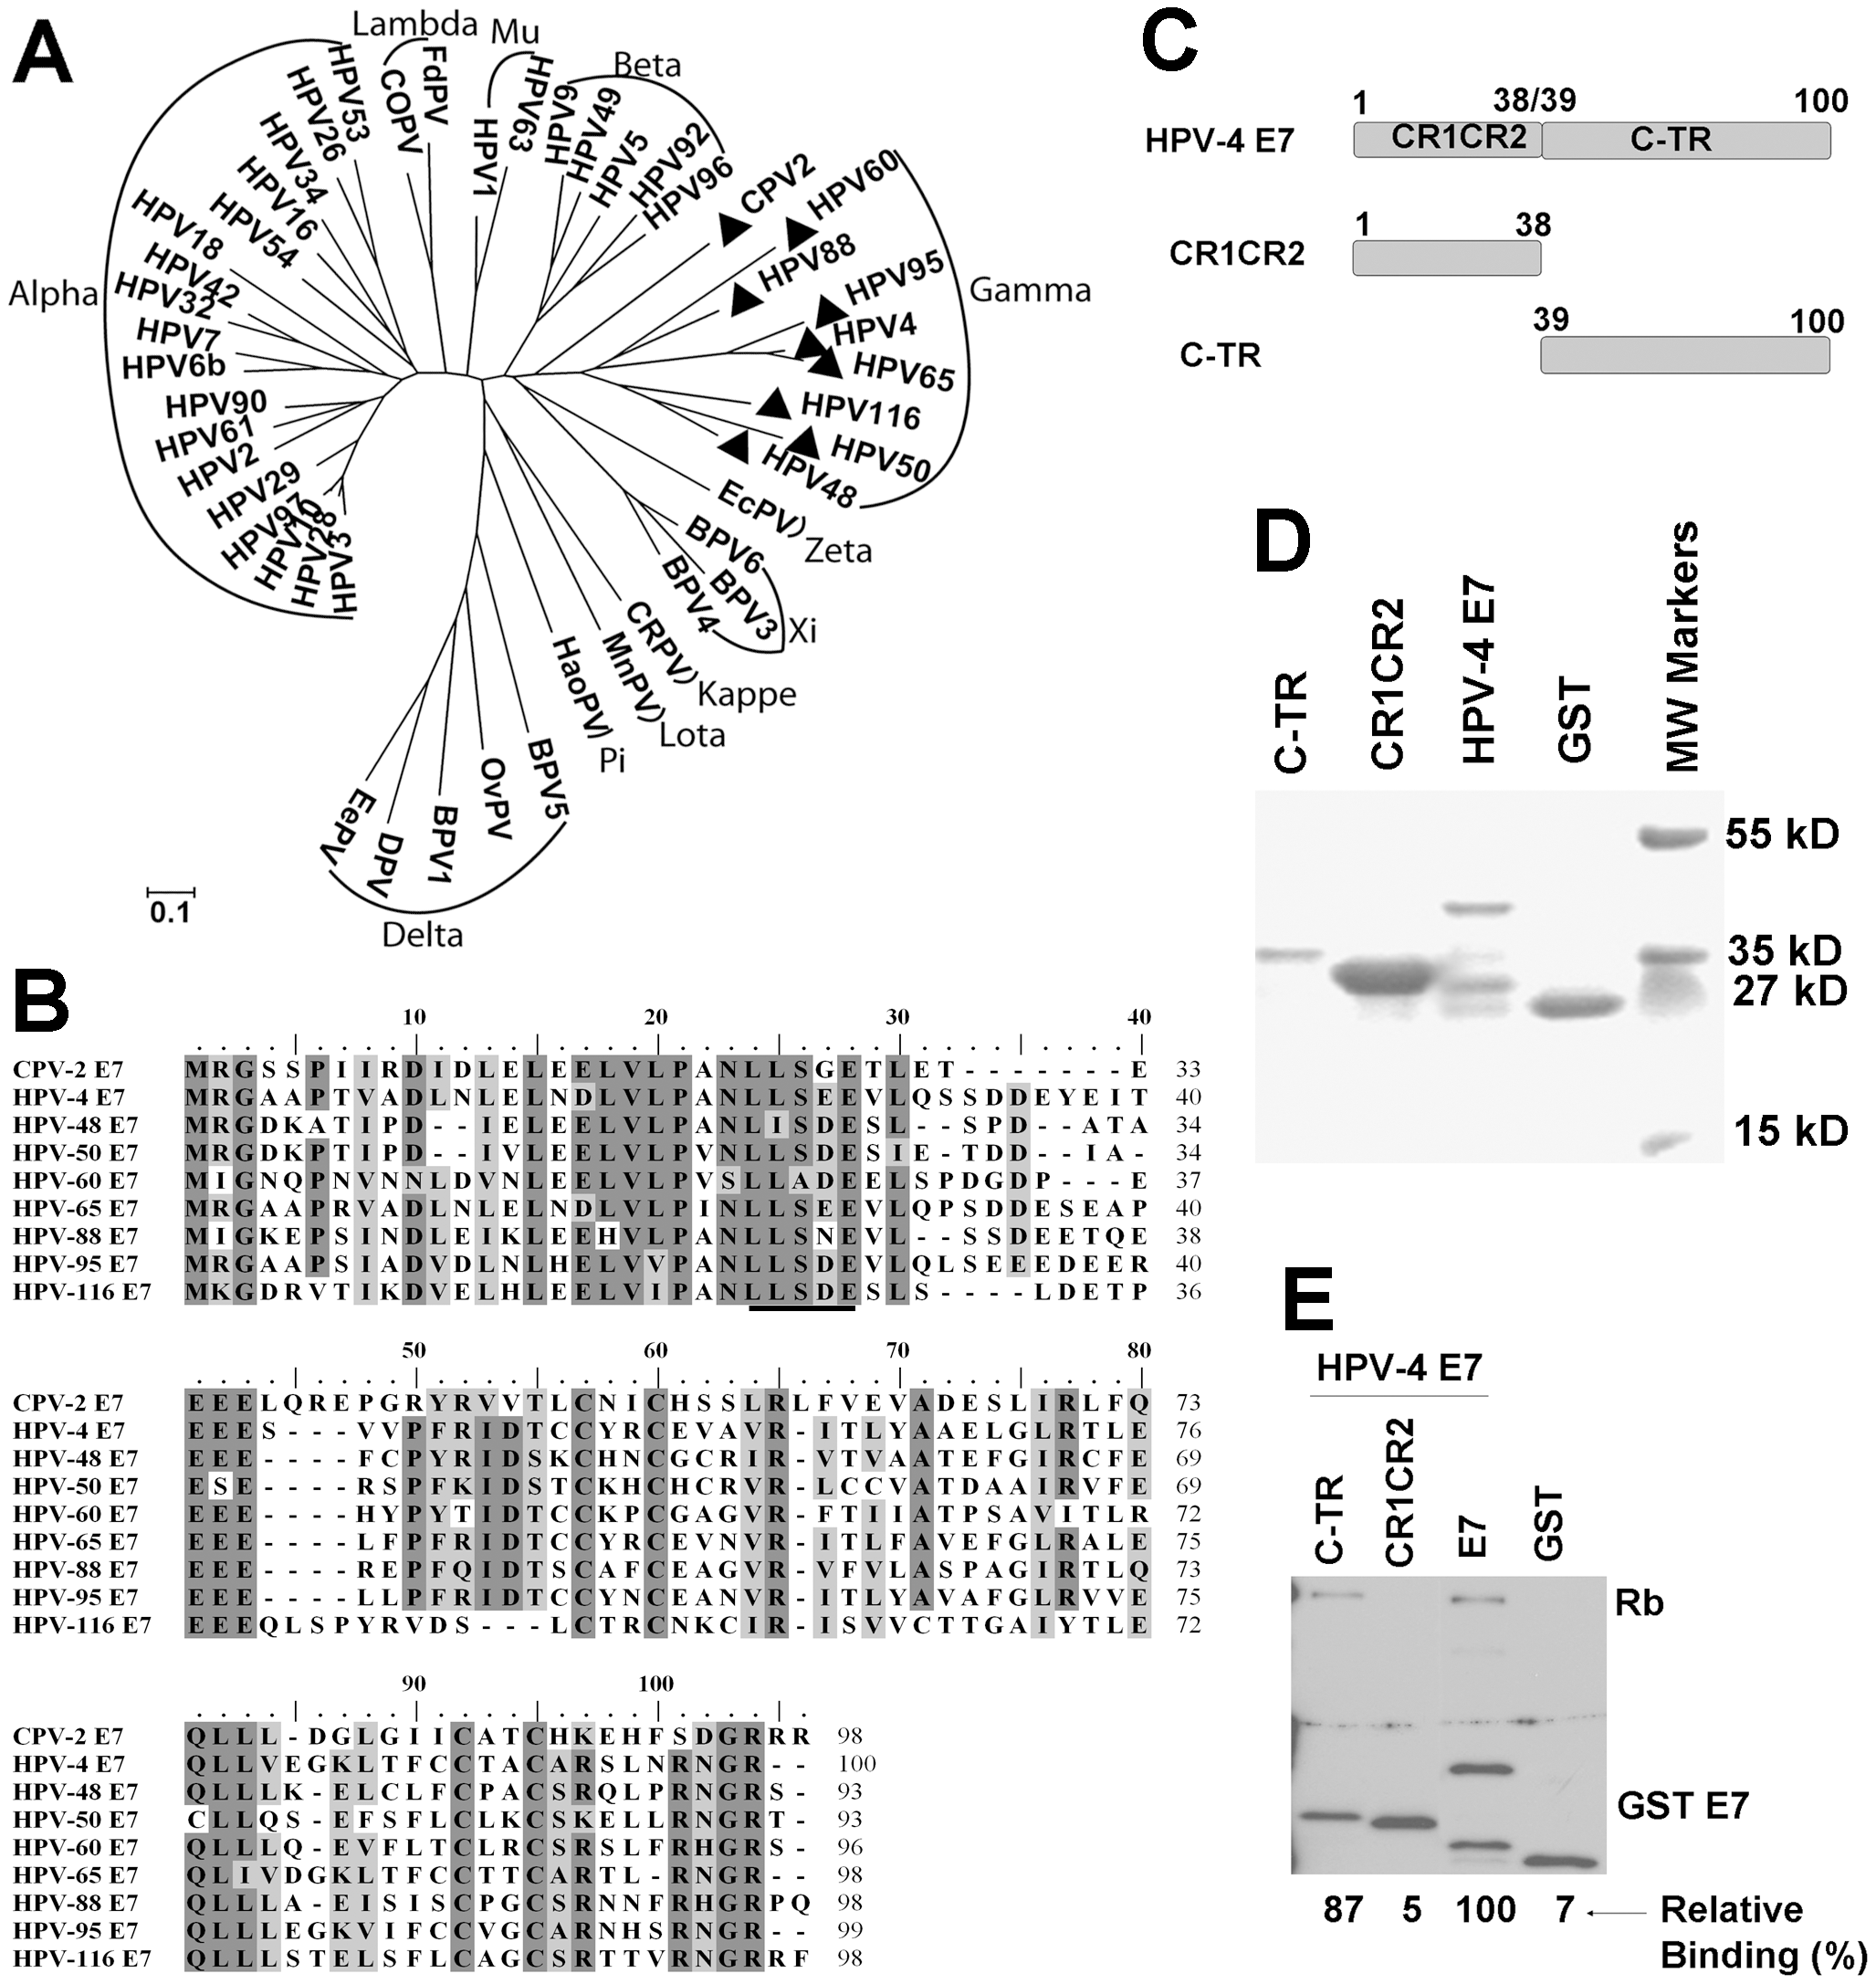 Similarities of the CPV-2 and gamma HPV E7 proteins.